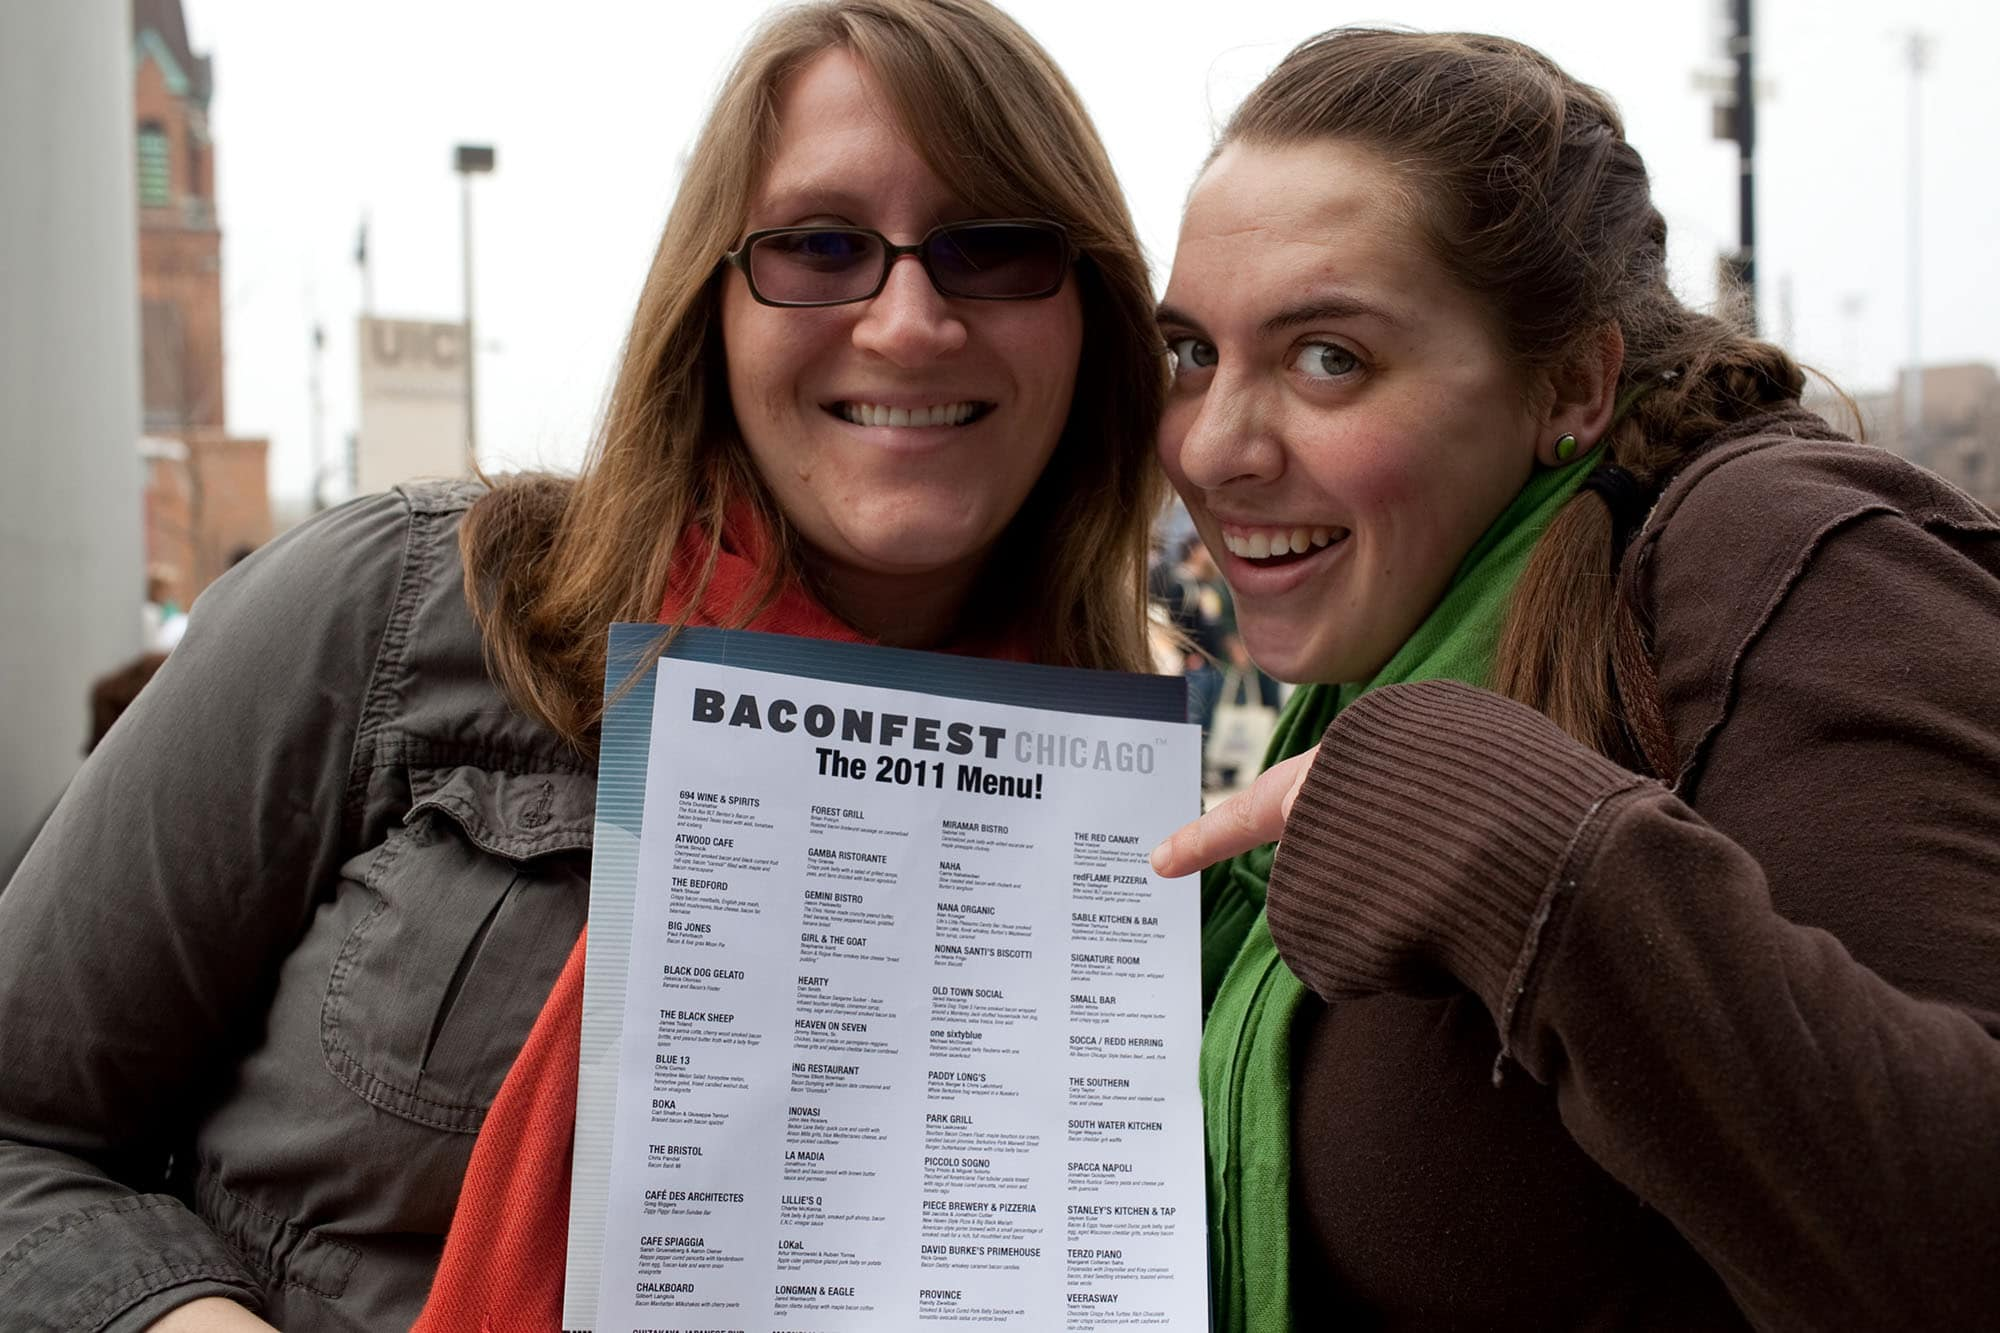 Waiting in line for Baconfest Chicago